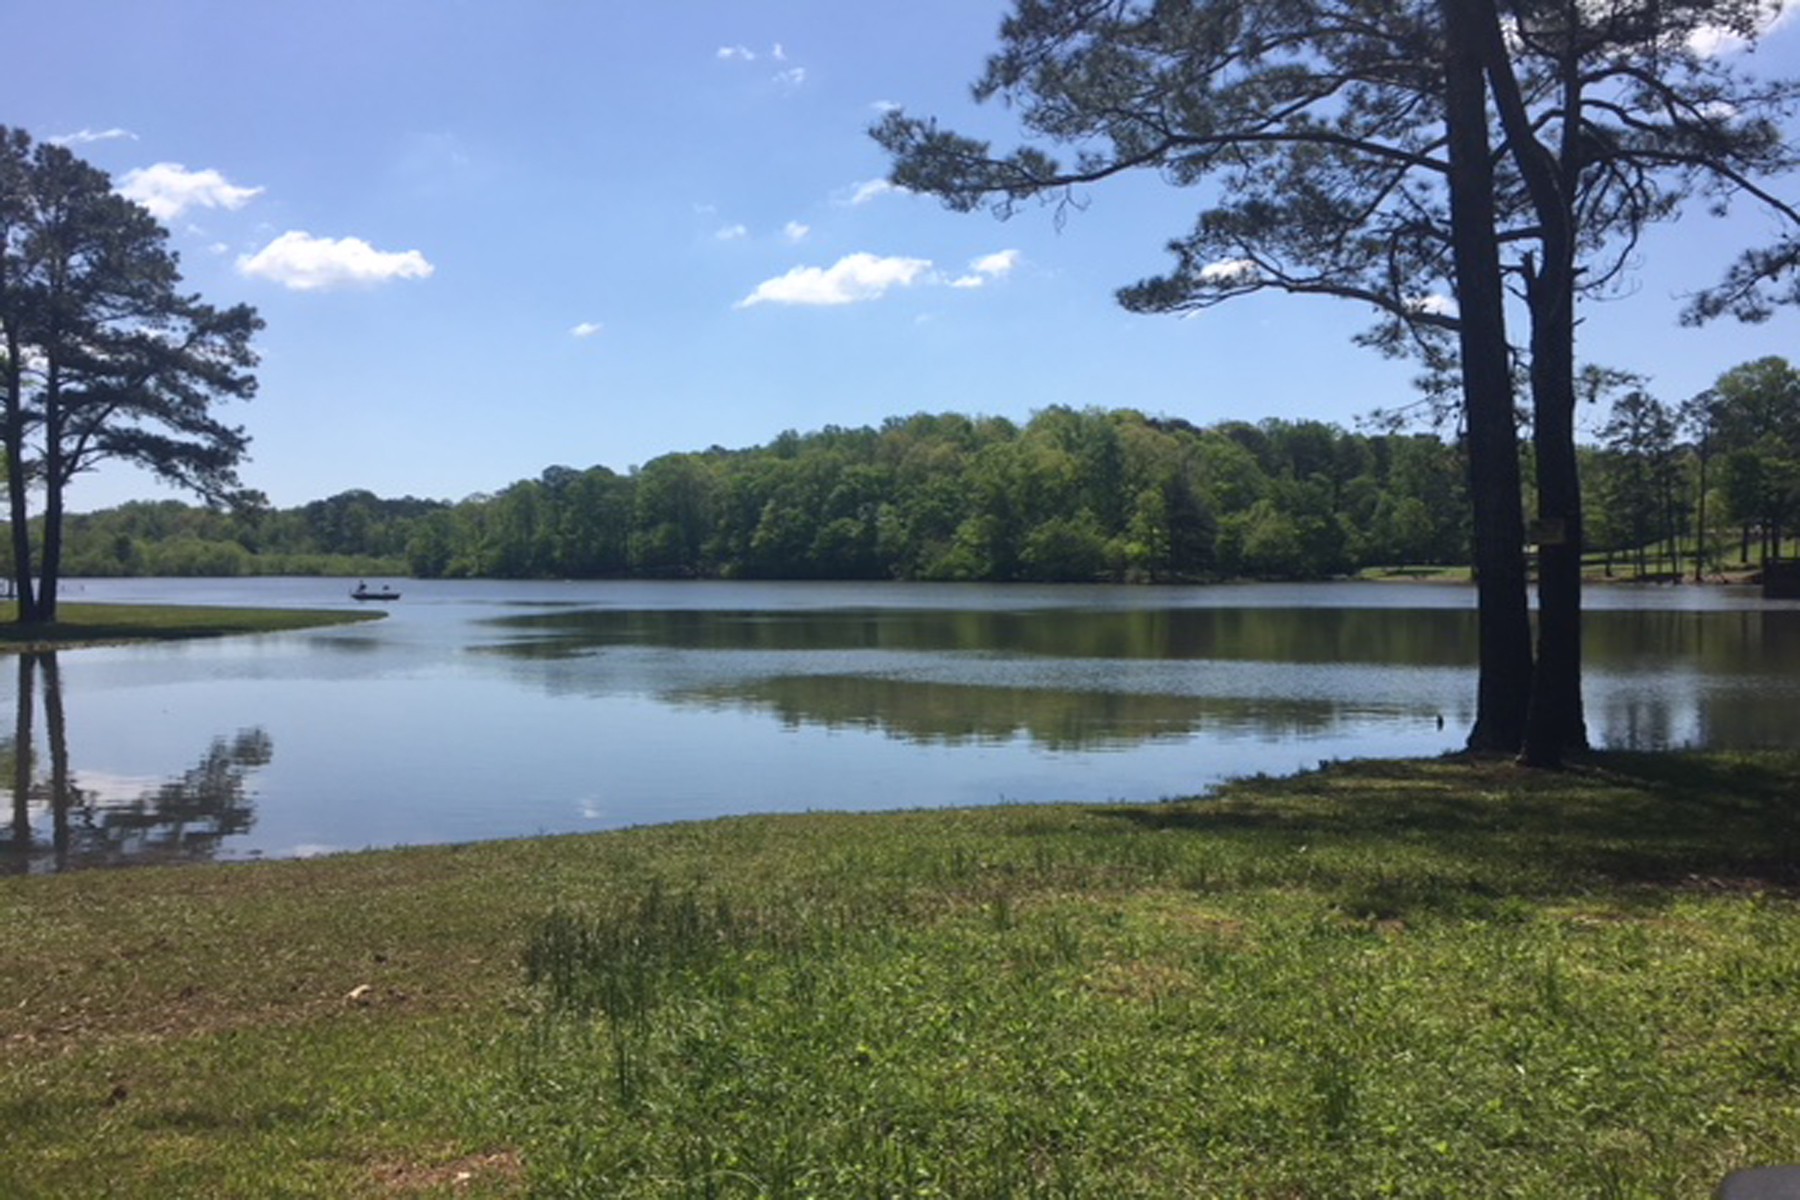 Land for Sale at Custom Homes in Private Gated Single Street Enclave Lot 3 Bethany Road Milton, Georgia 30004 United States